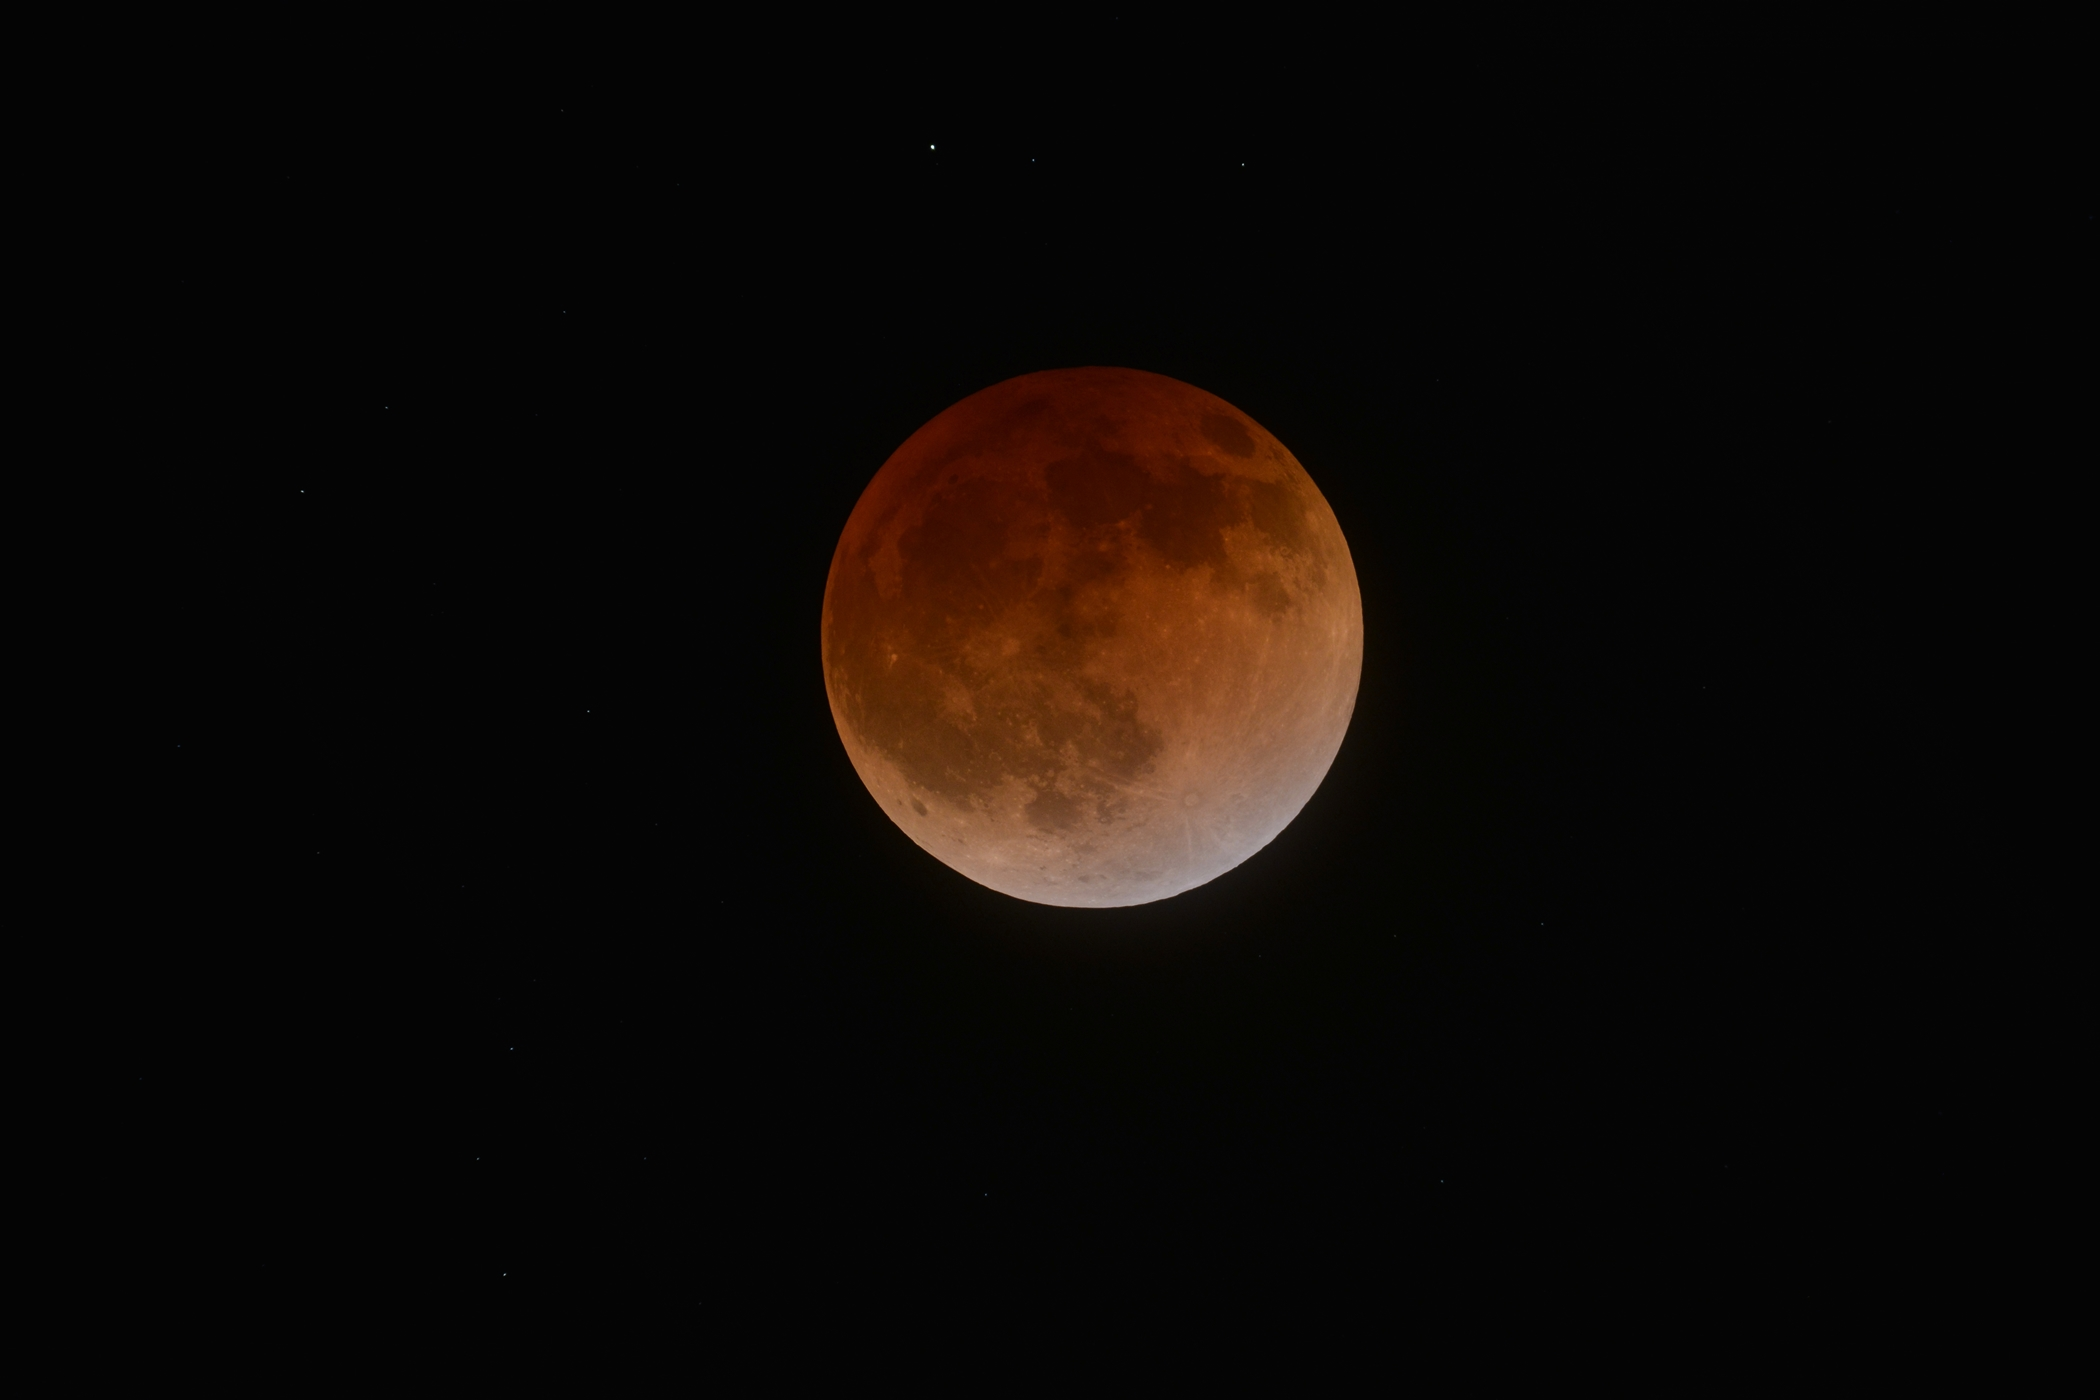 luareclipse04.14.2014 totality